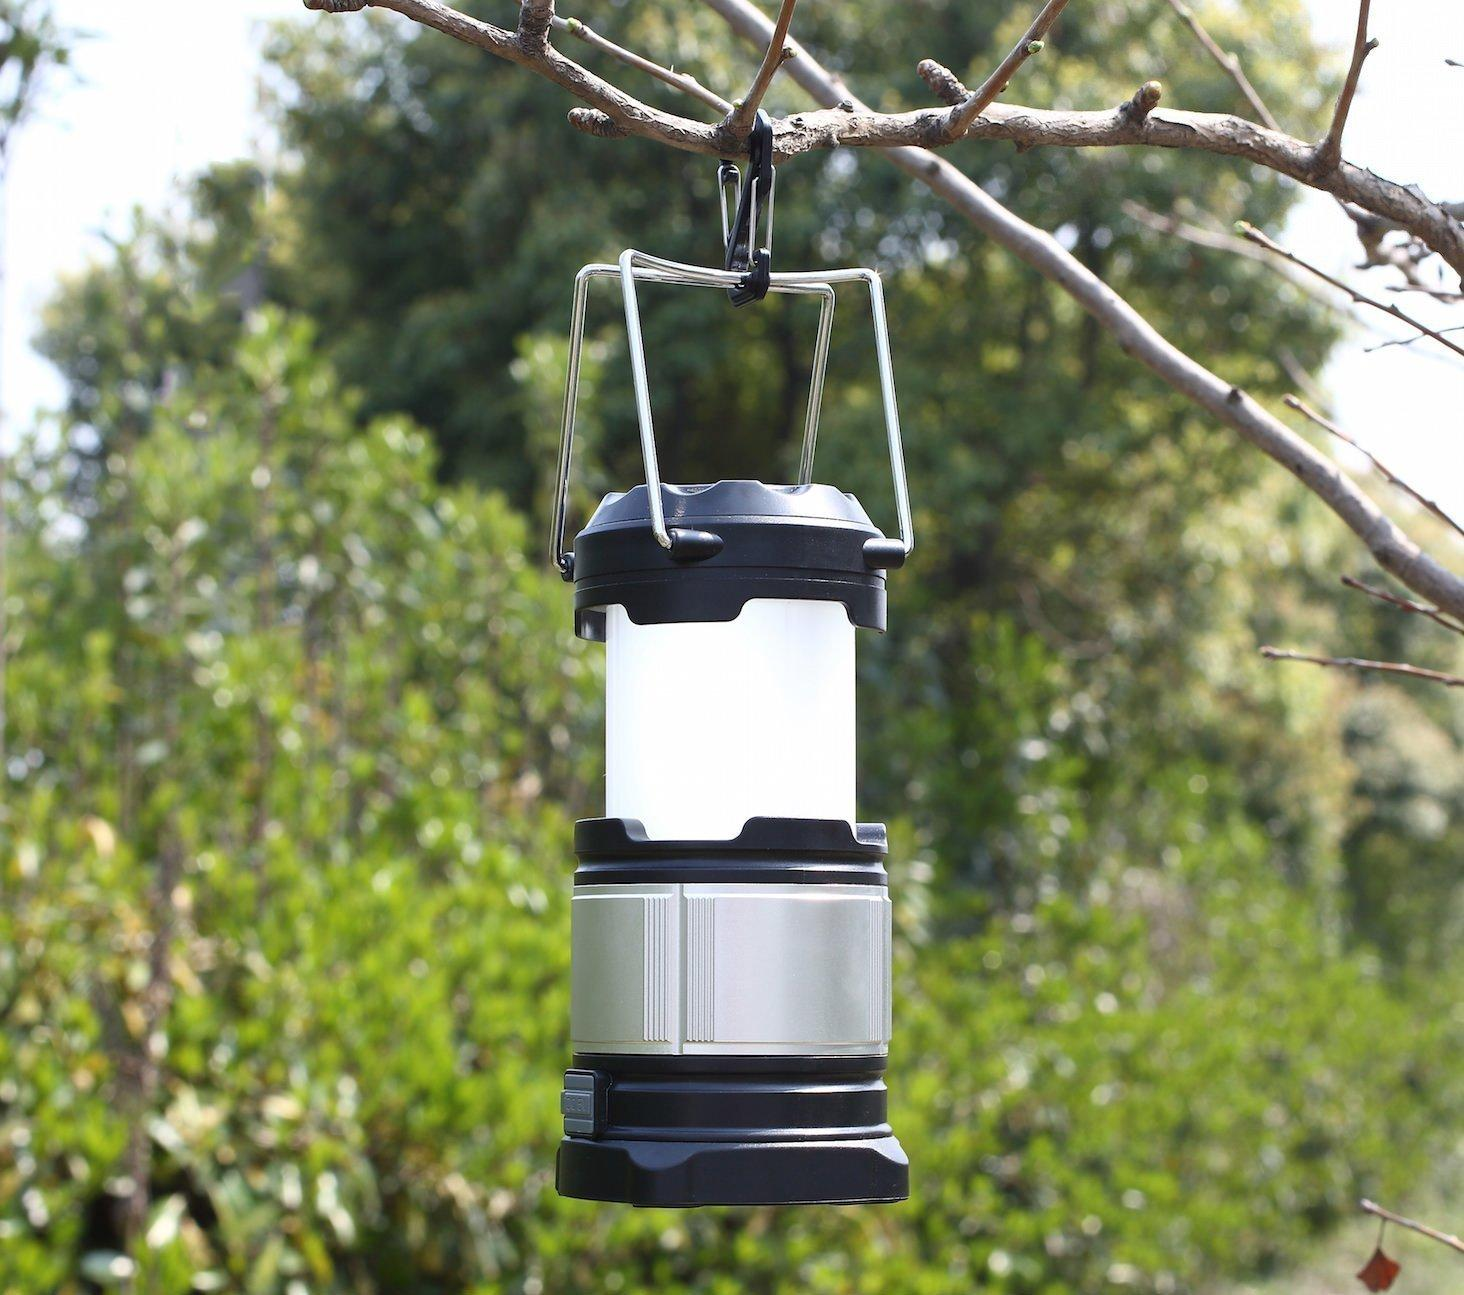 LED Camping Lantern with Power Bank